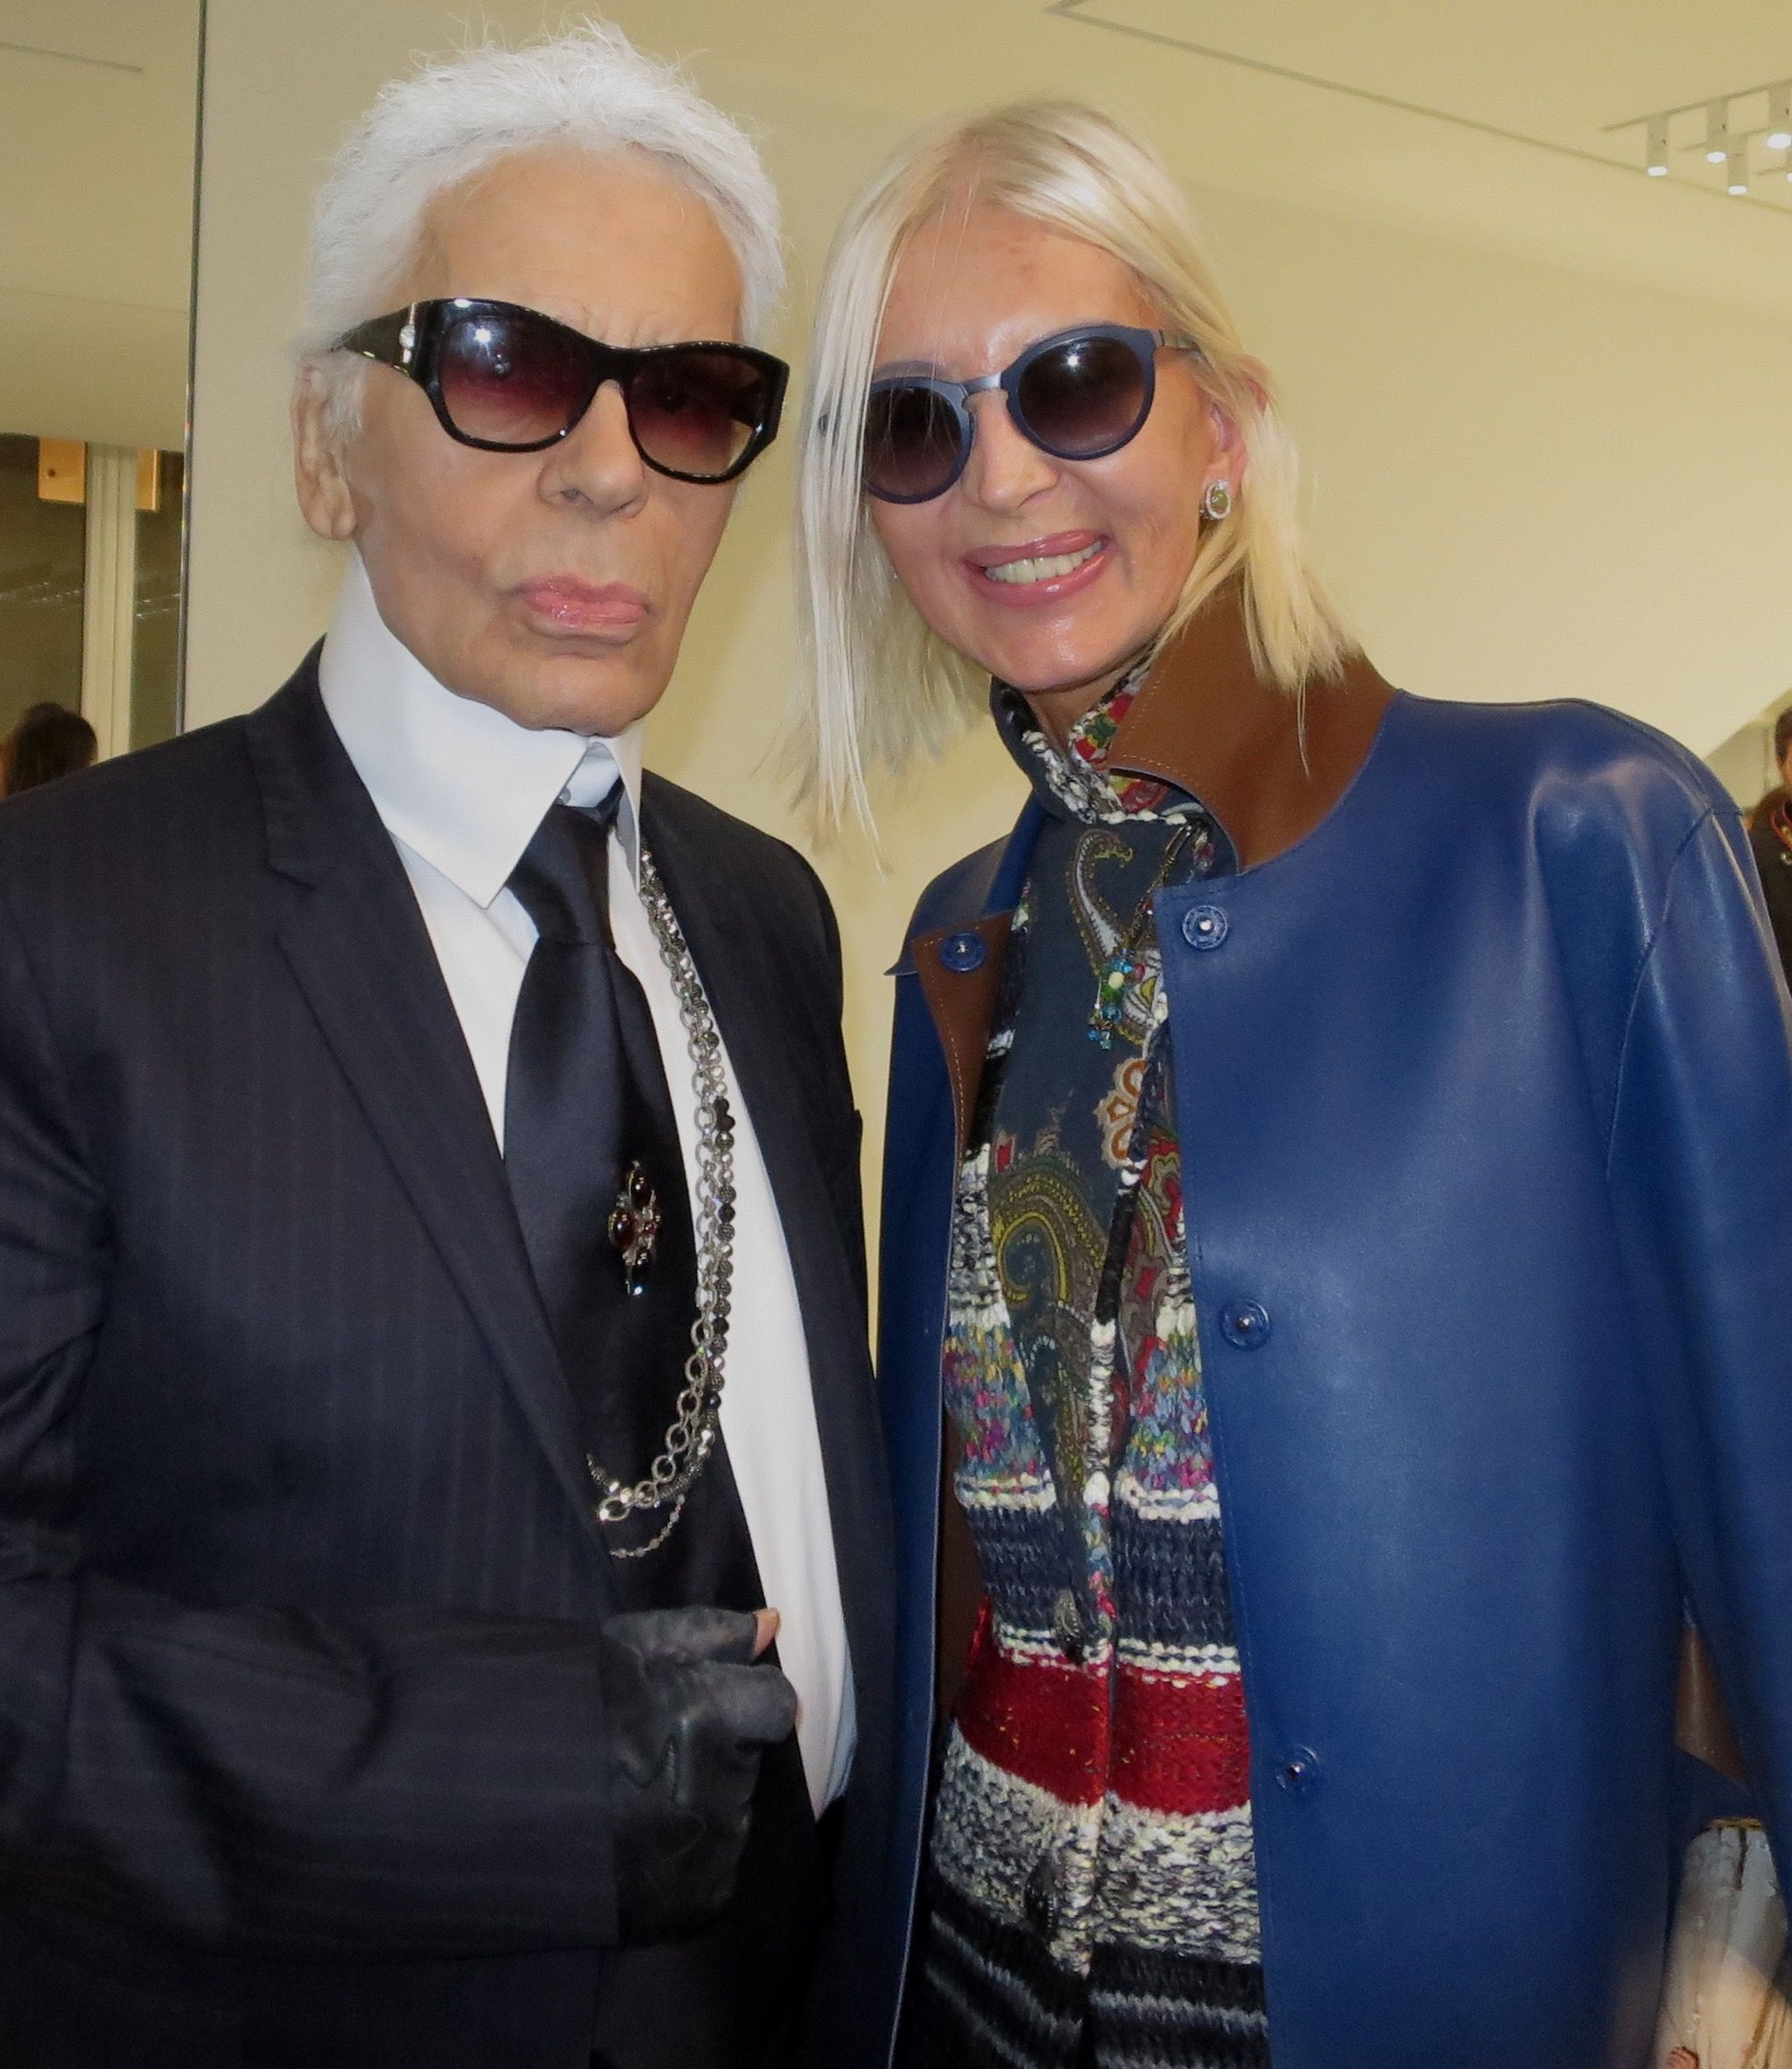 DIOR HOMME Private Party with KARL LAGERFELD and ANNE De CHAMPIGNEUL